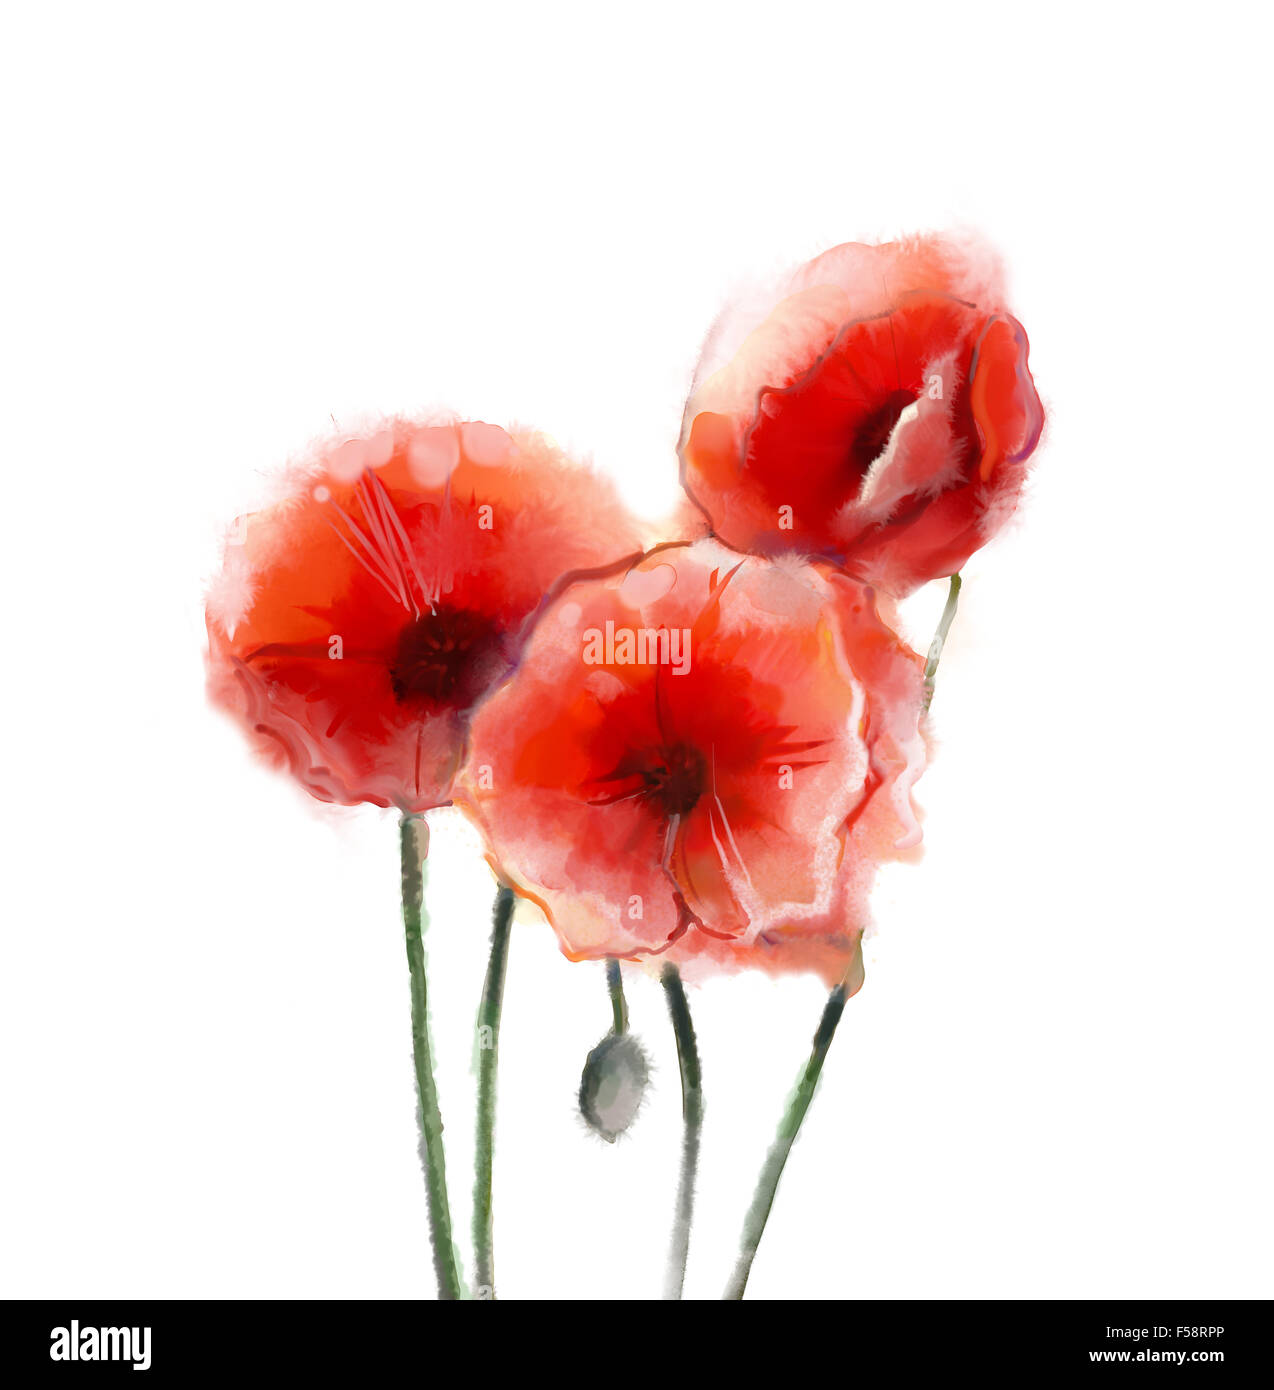 Red poppy flowers watercolor painting isolated on white background red poppy flowers watercolor painting isolated on white background mightylinksfo